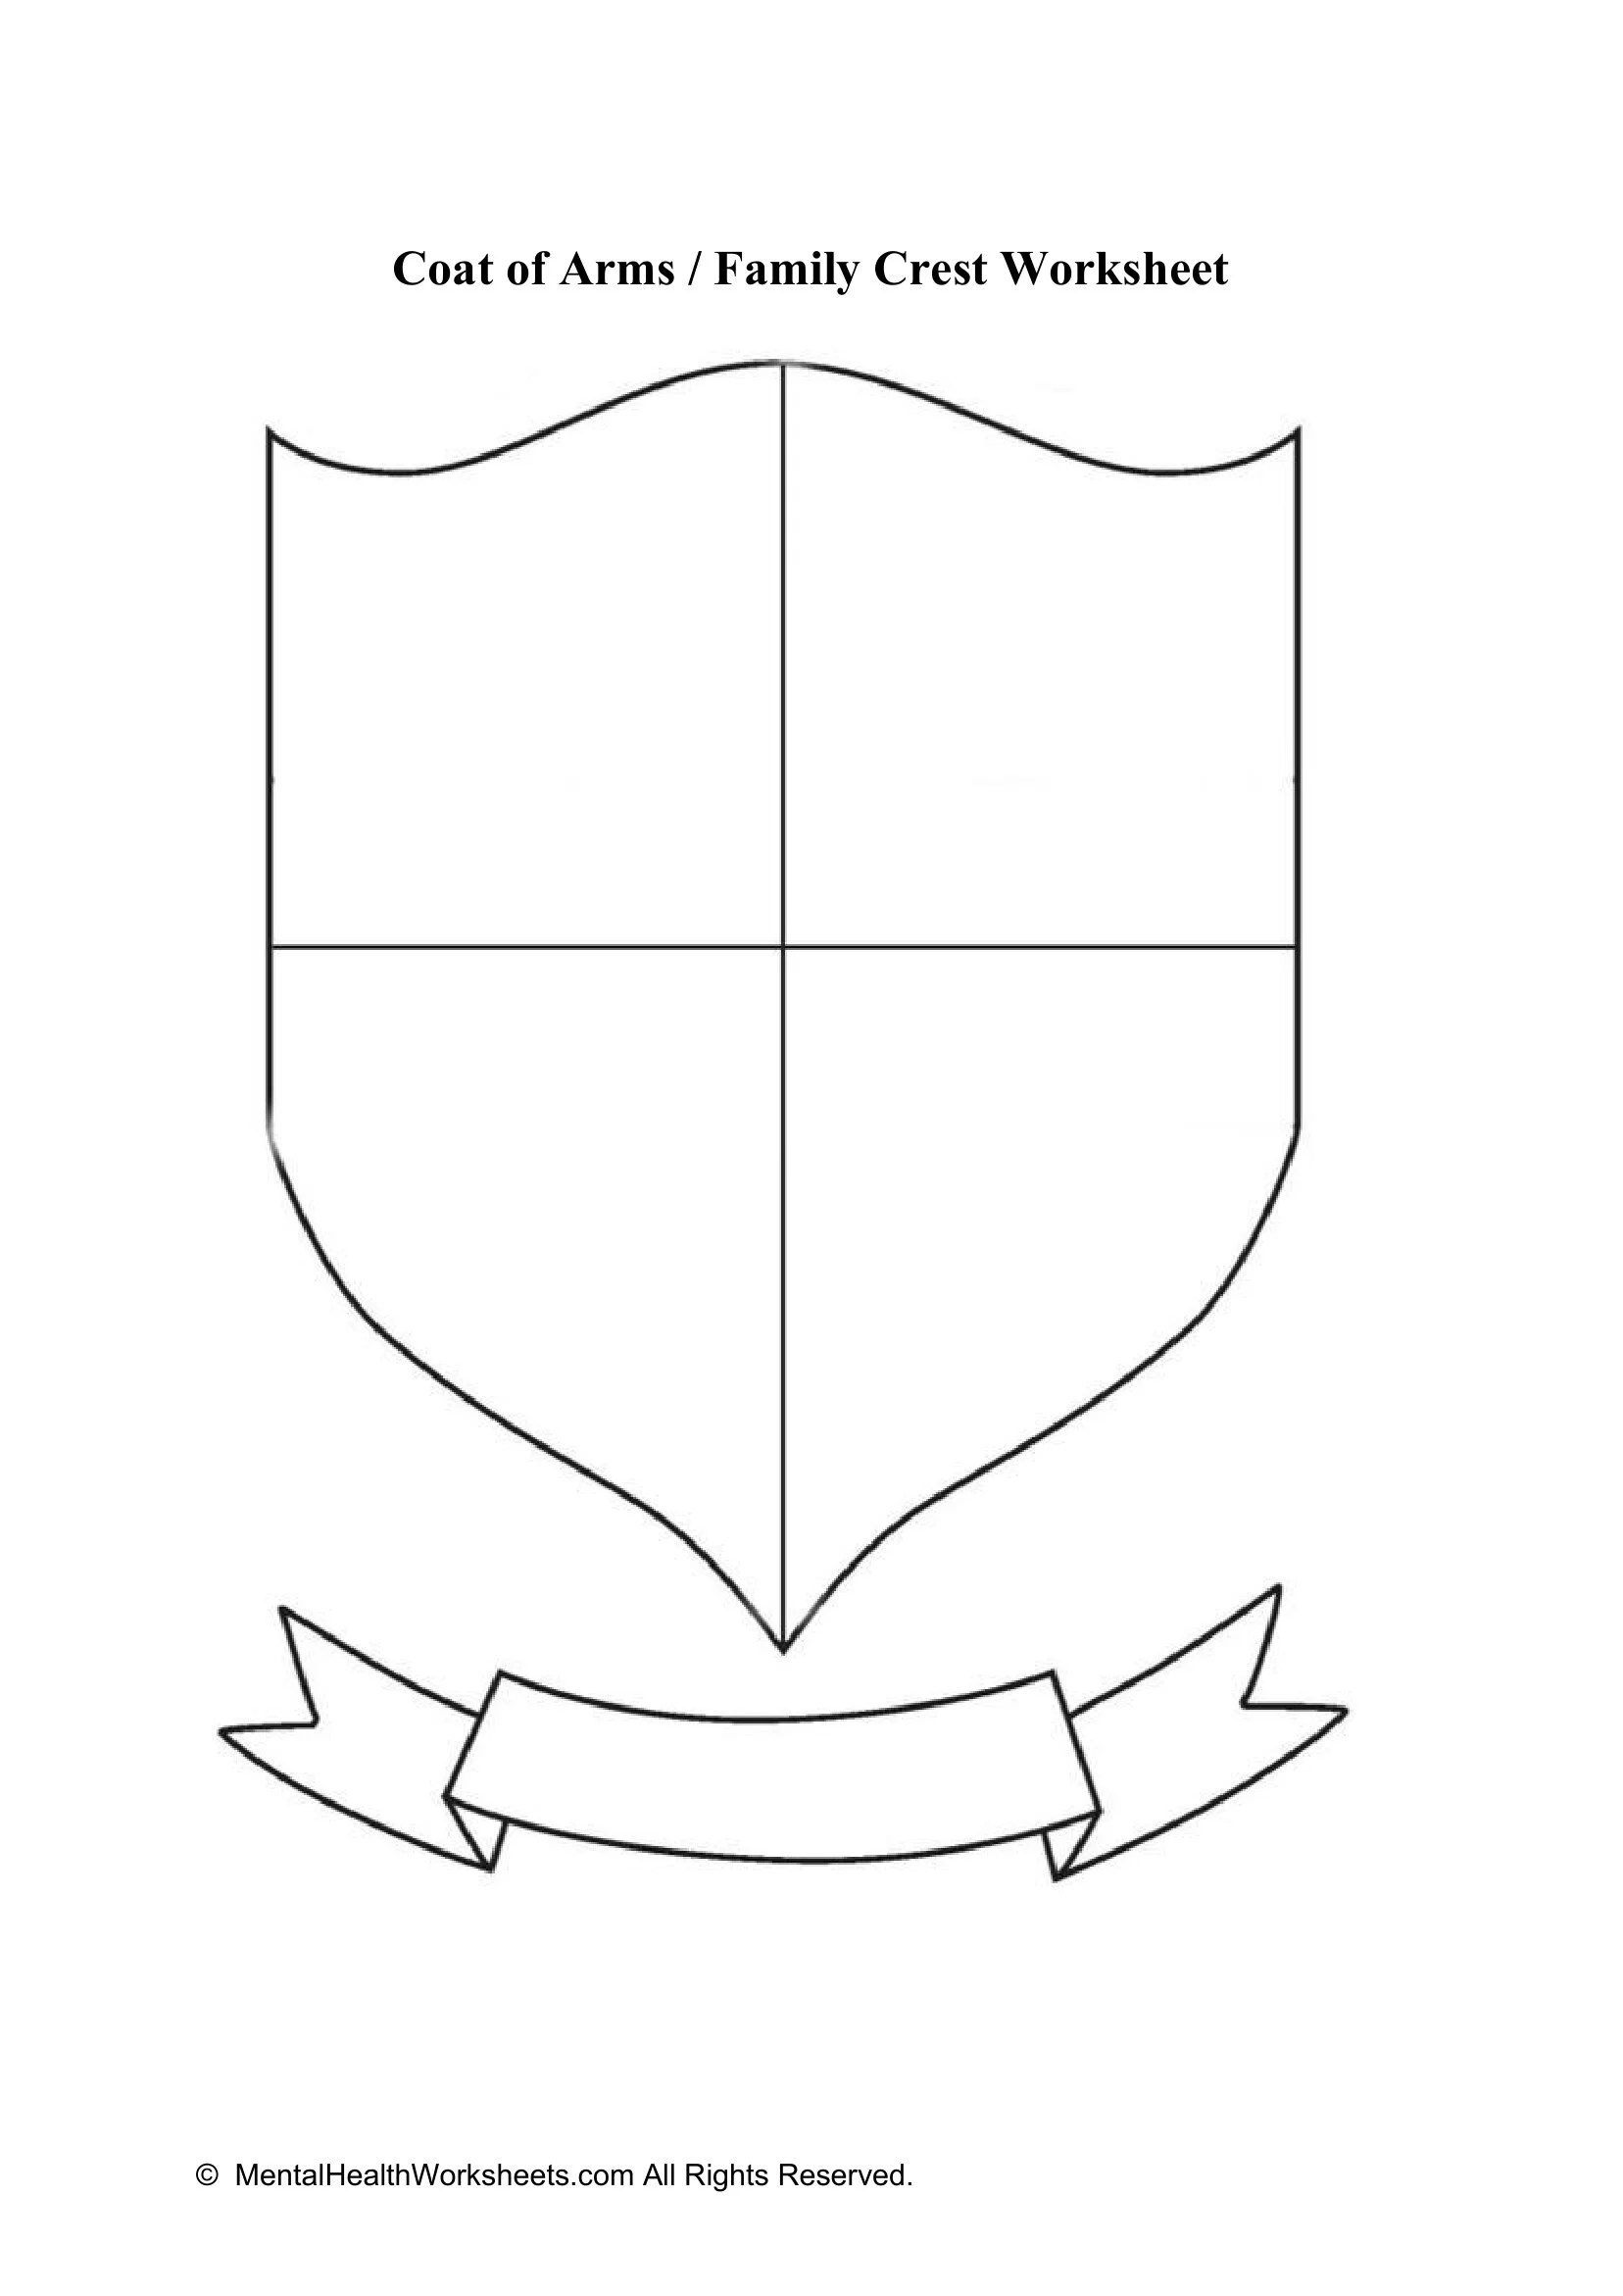 Coat Of Arms Family Crest Worksheet